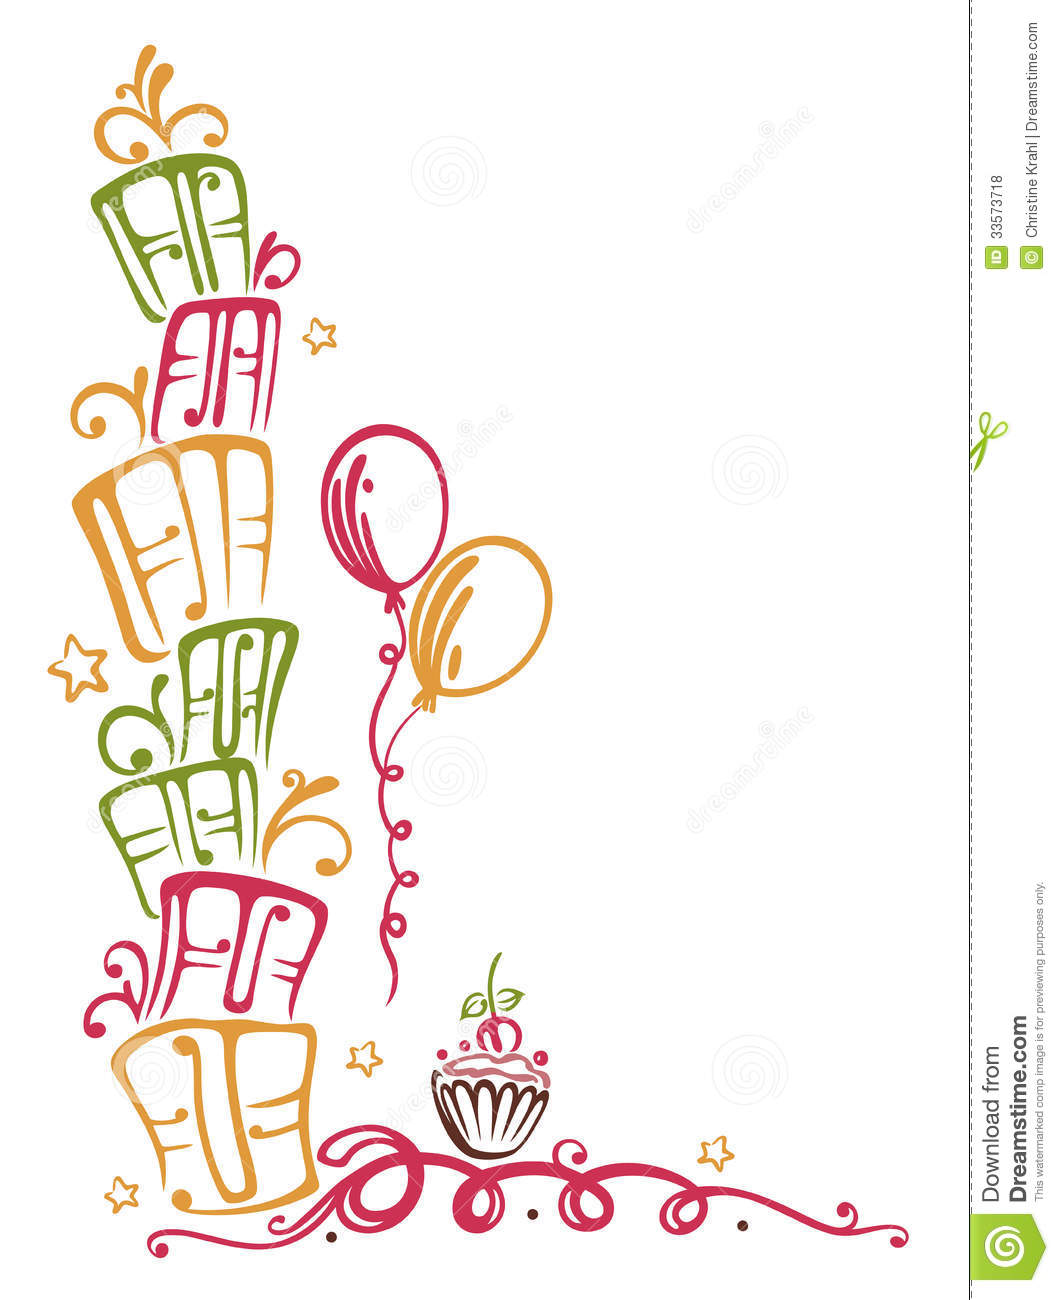 birthday borders for pictures ; birthday-border-royalty-free-stock-photos--image-33573718-25